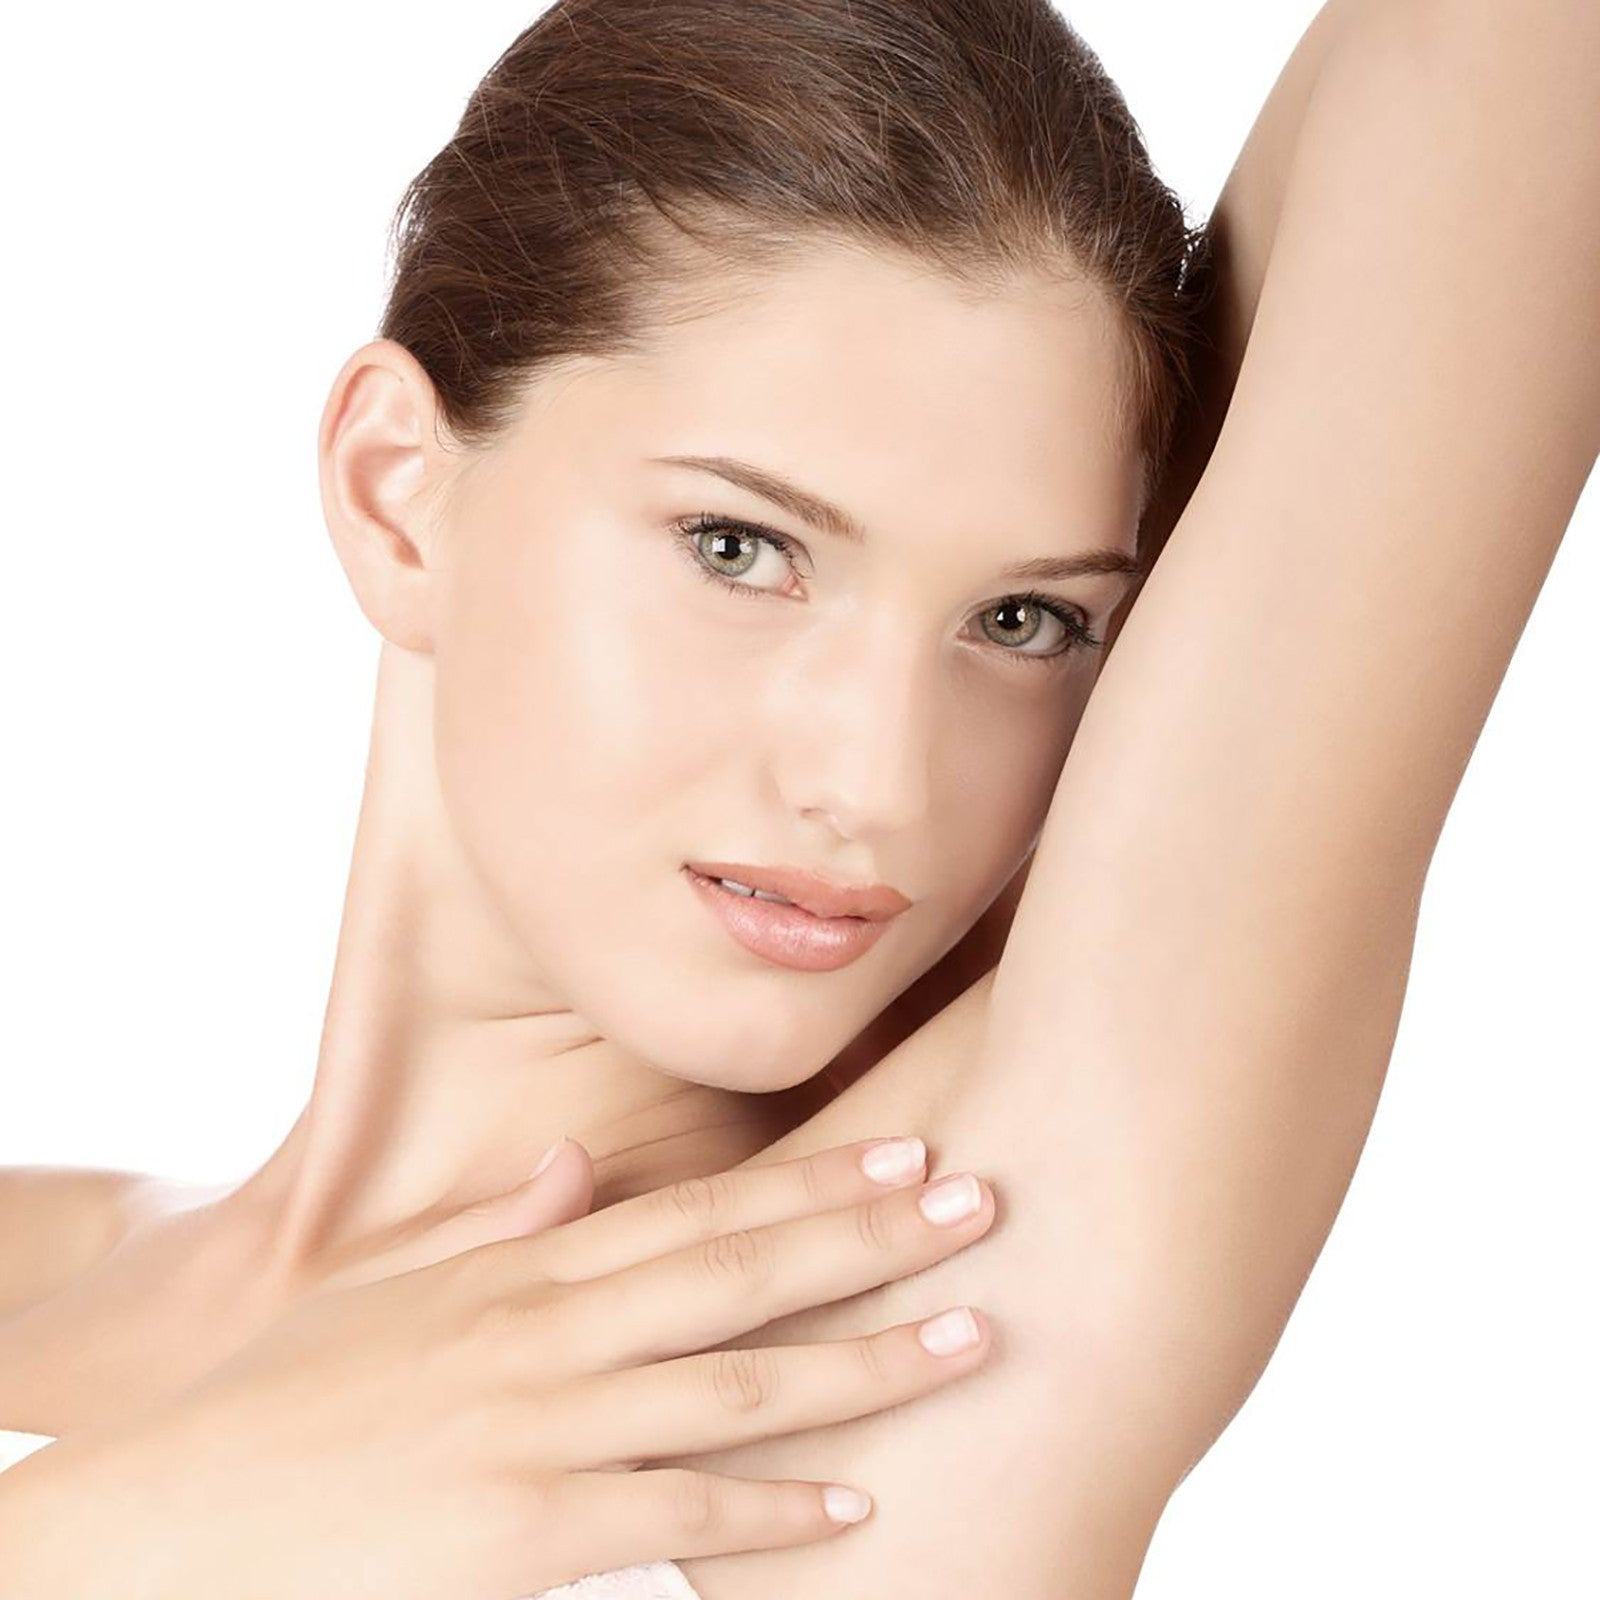 Under Arm Warm Wax